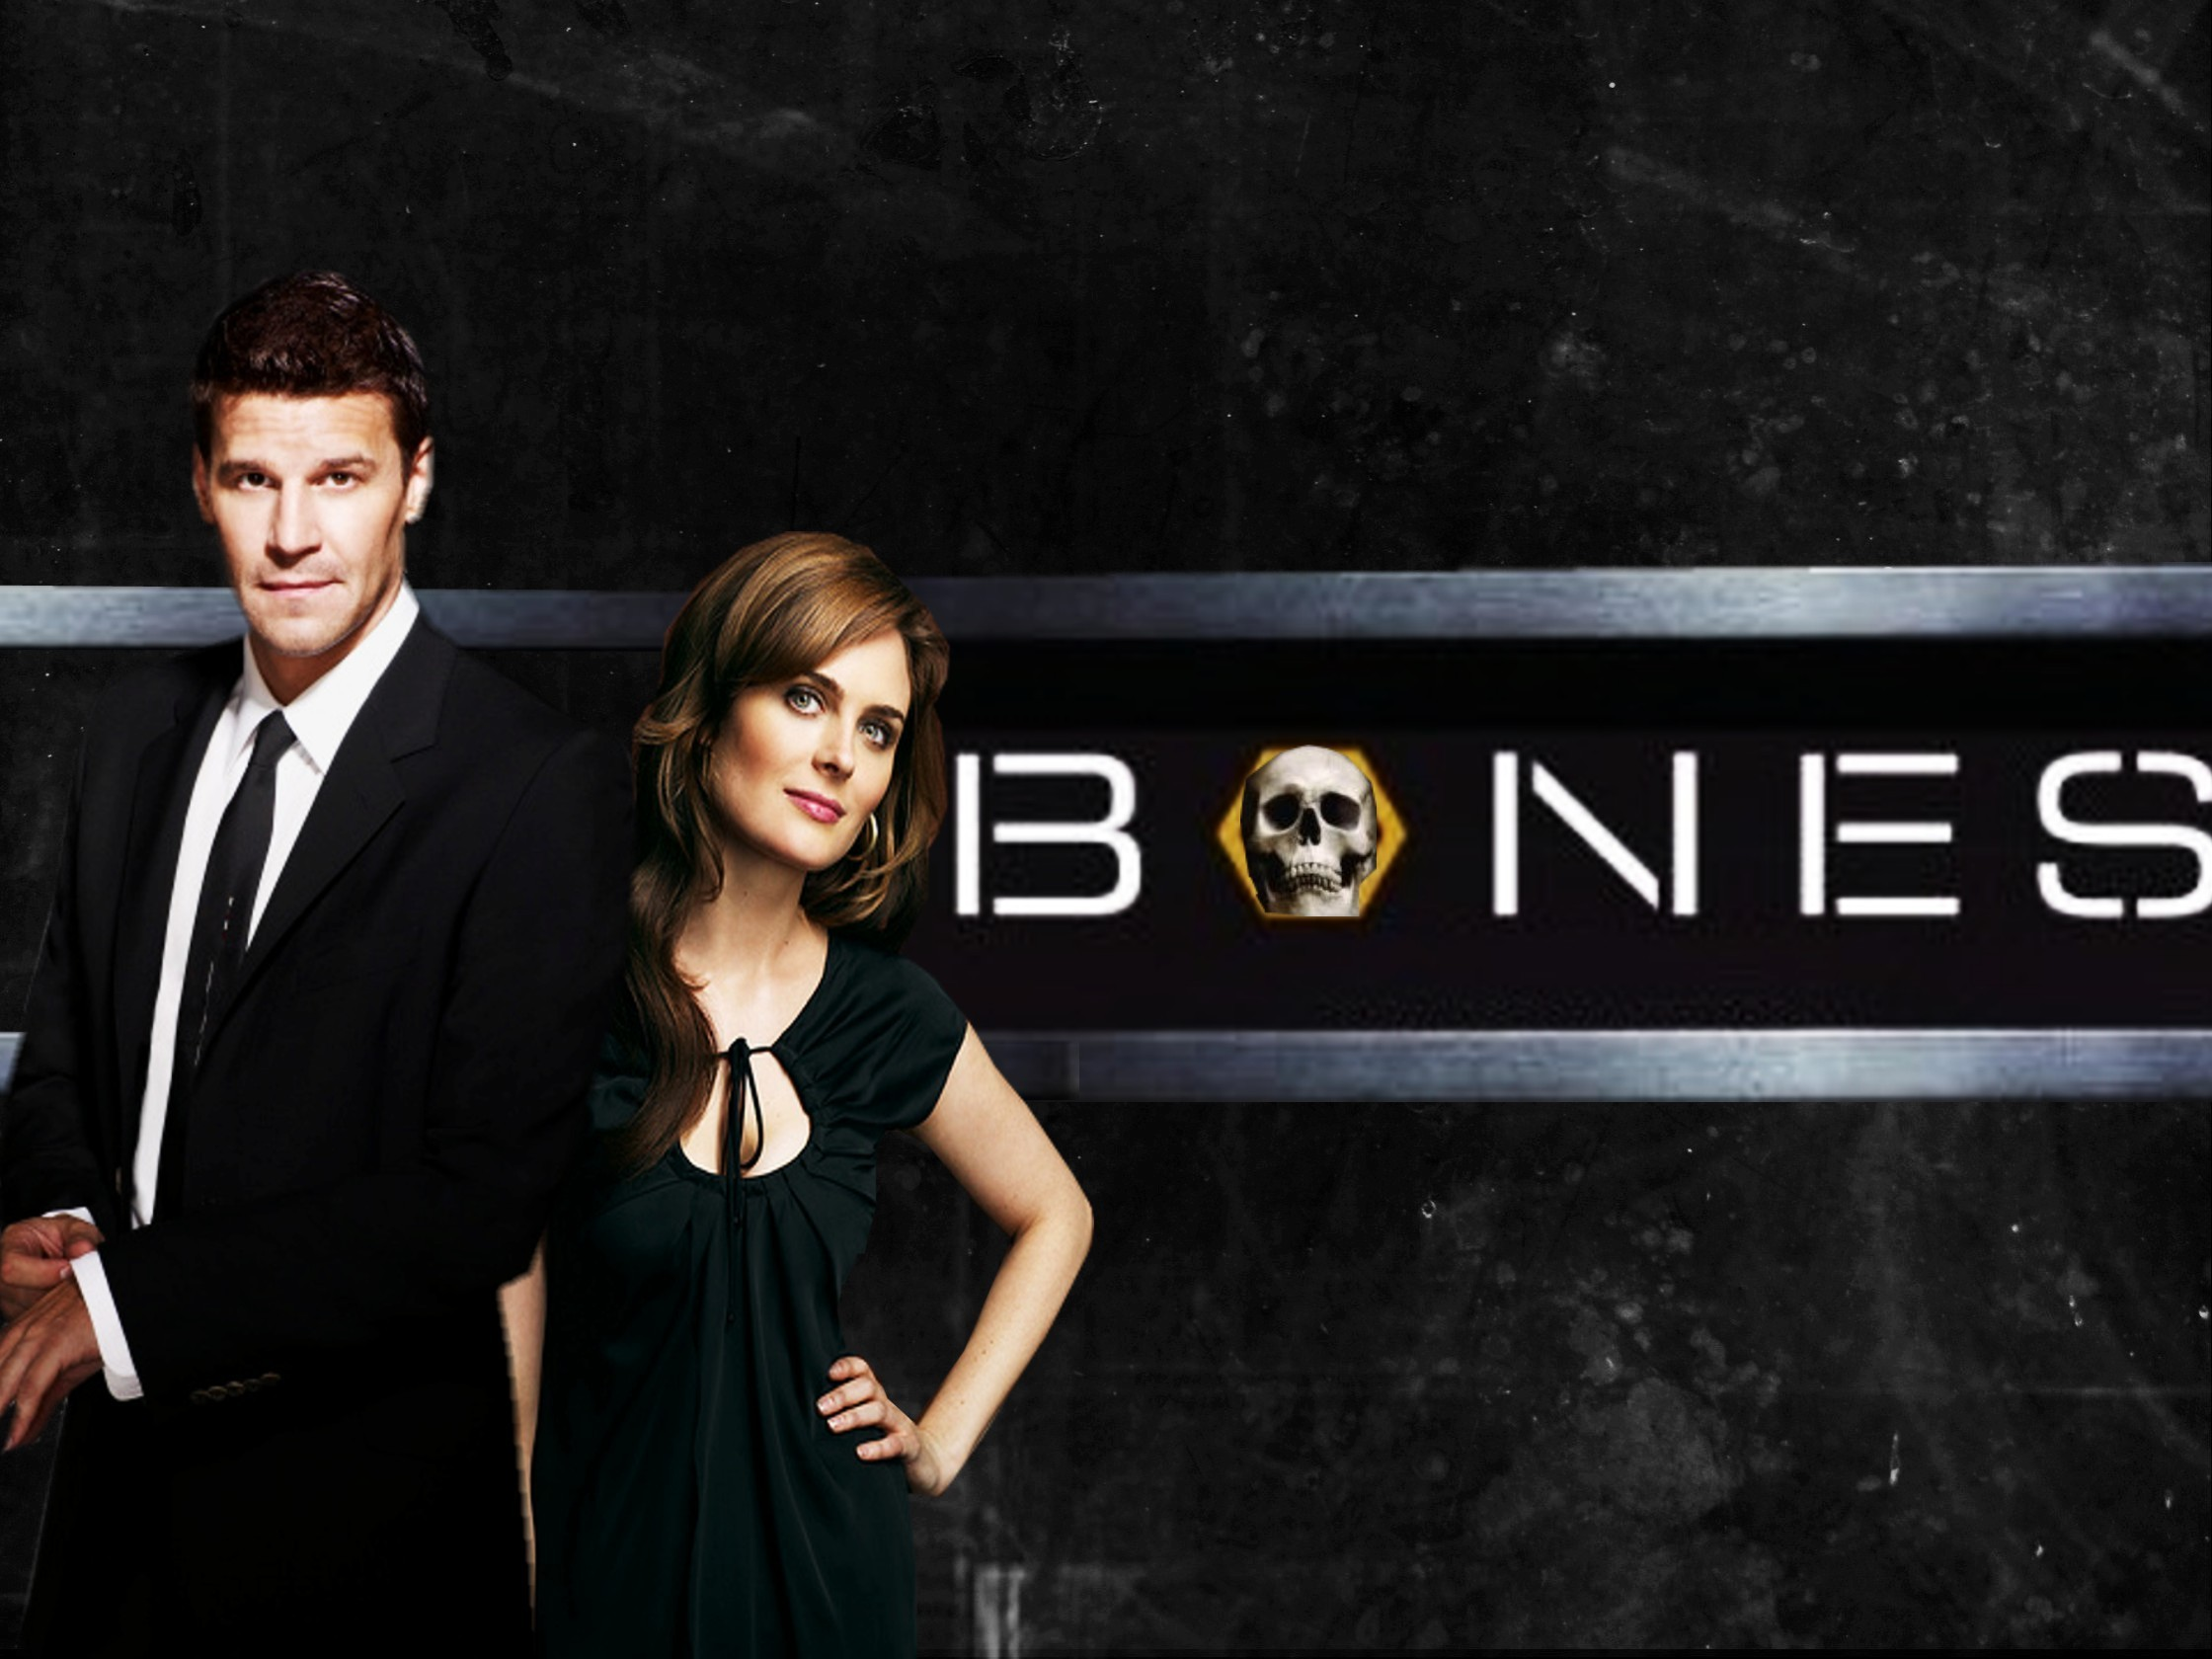 2240x1680 - Bones Wallpapers 17